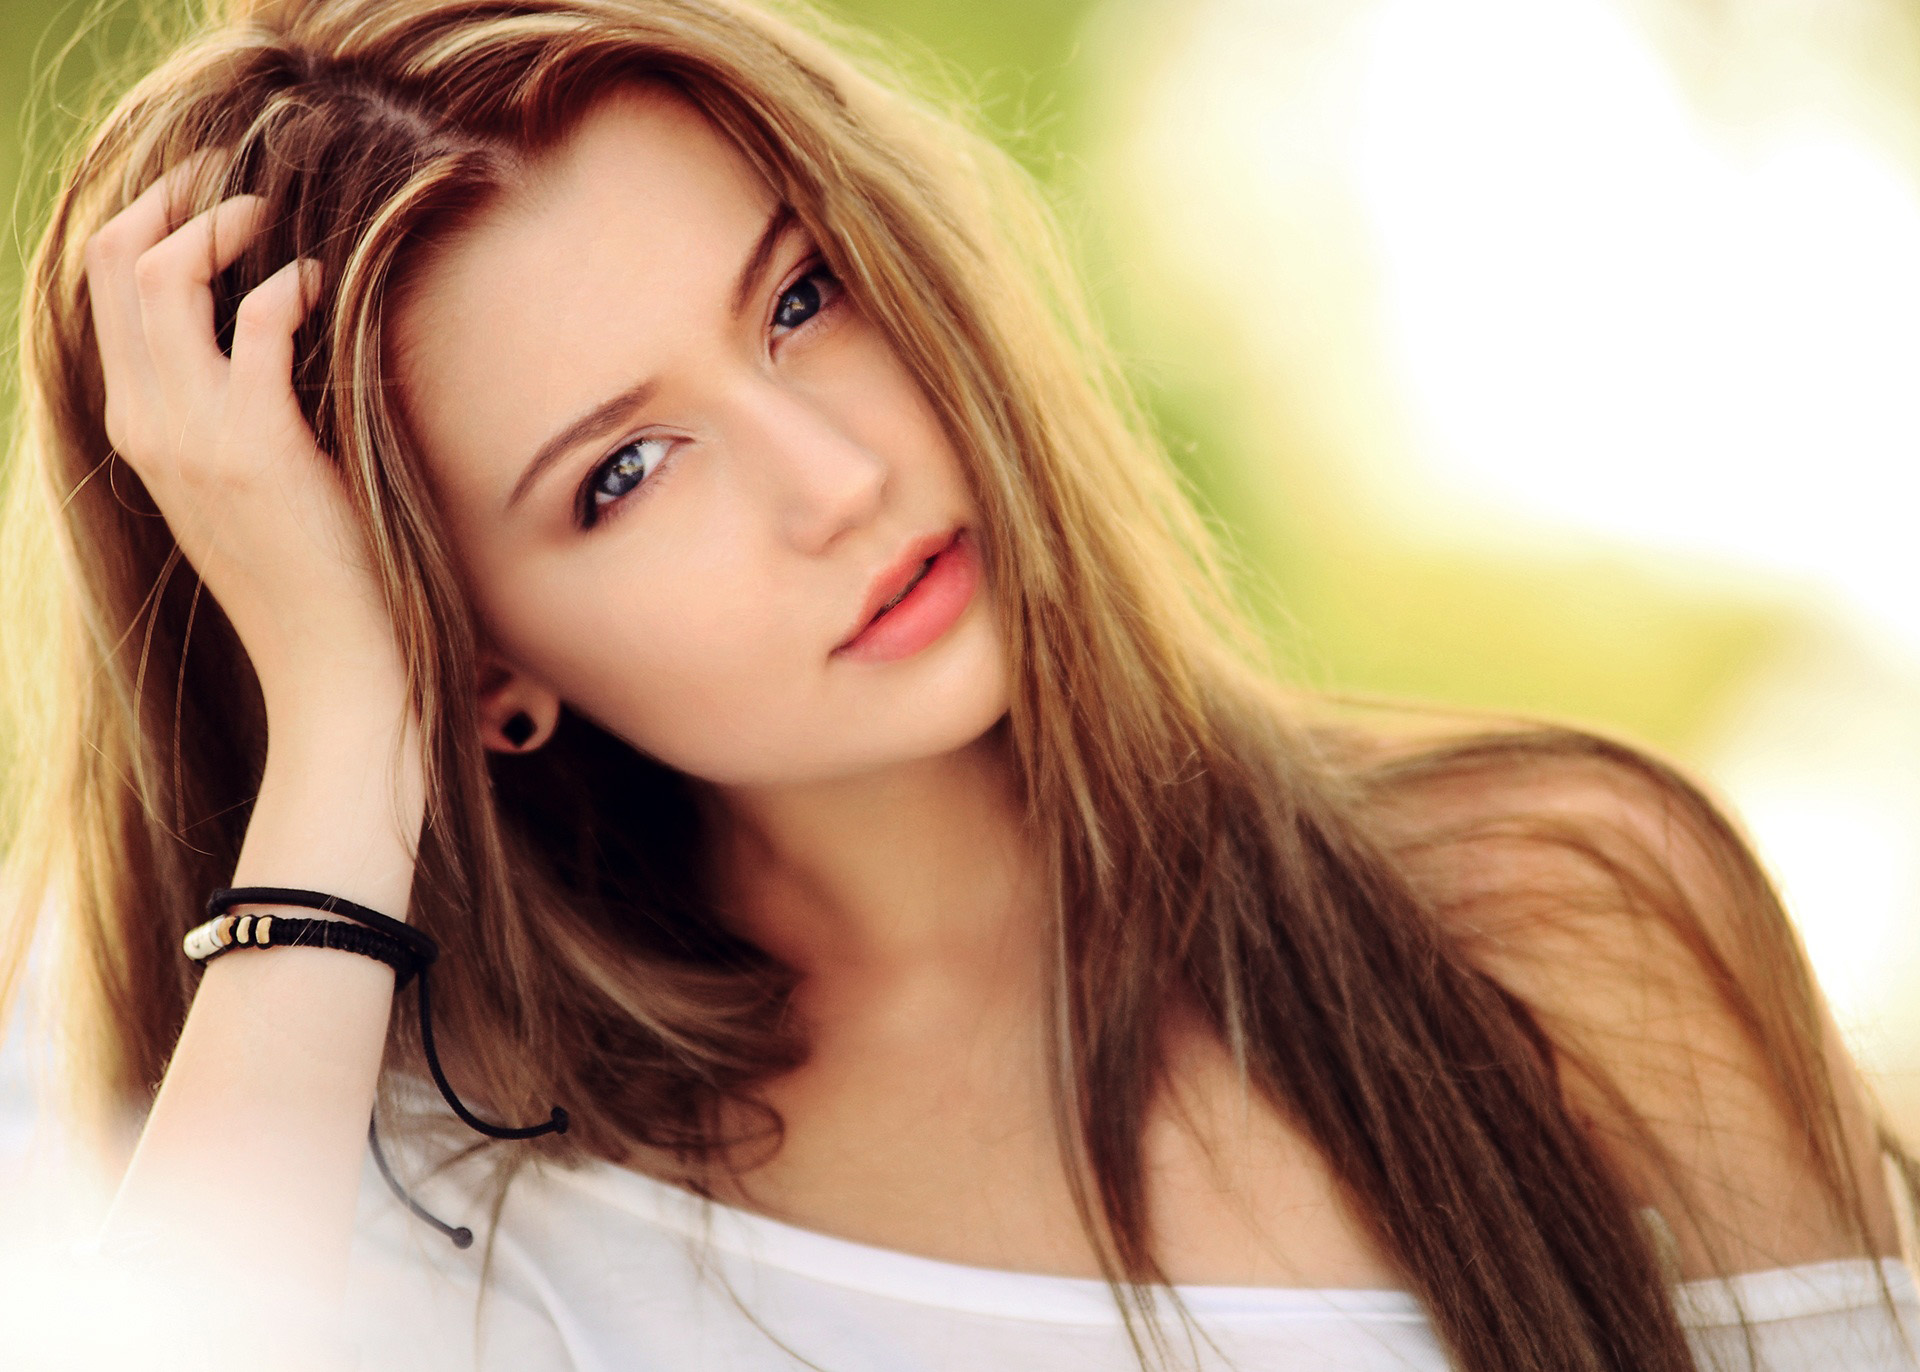 Beautiful Girl with long hair and pretty eyes image - Free stock ...